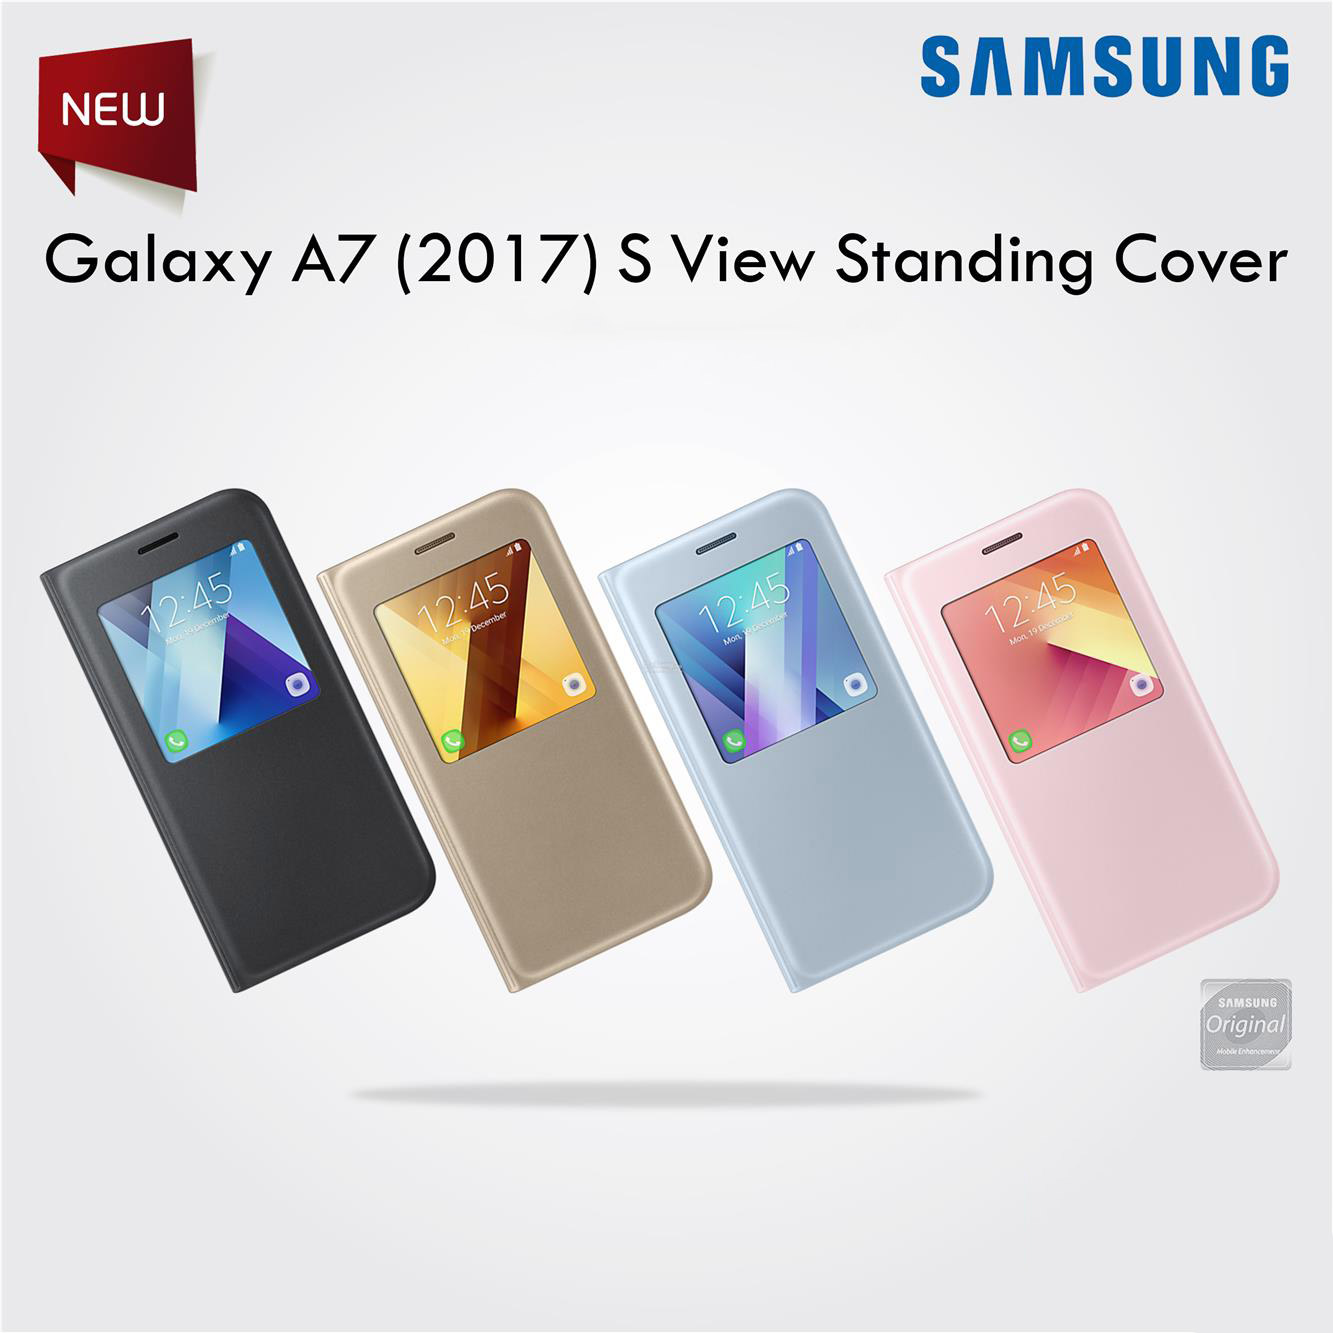 S View Standing Cover A7 (2017)